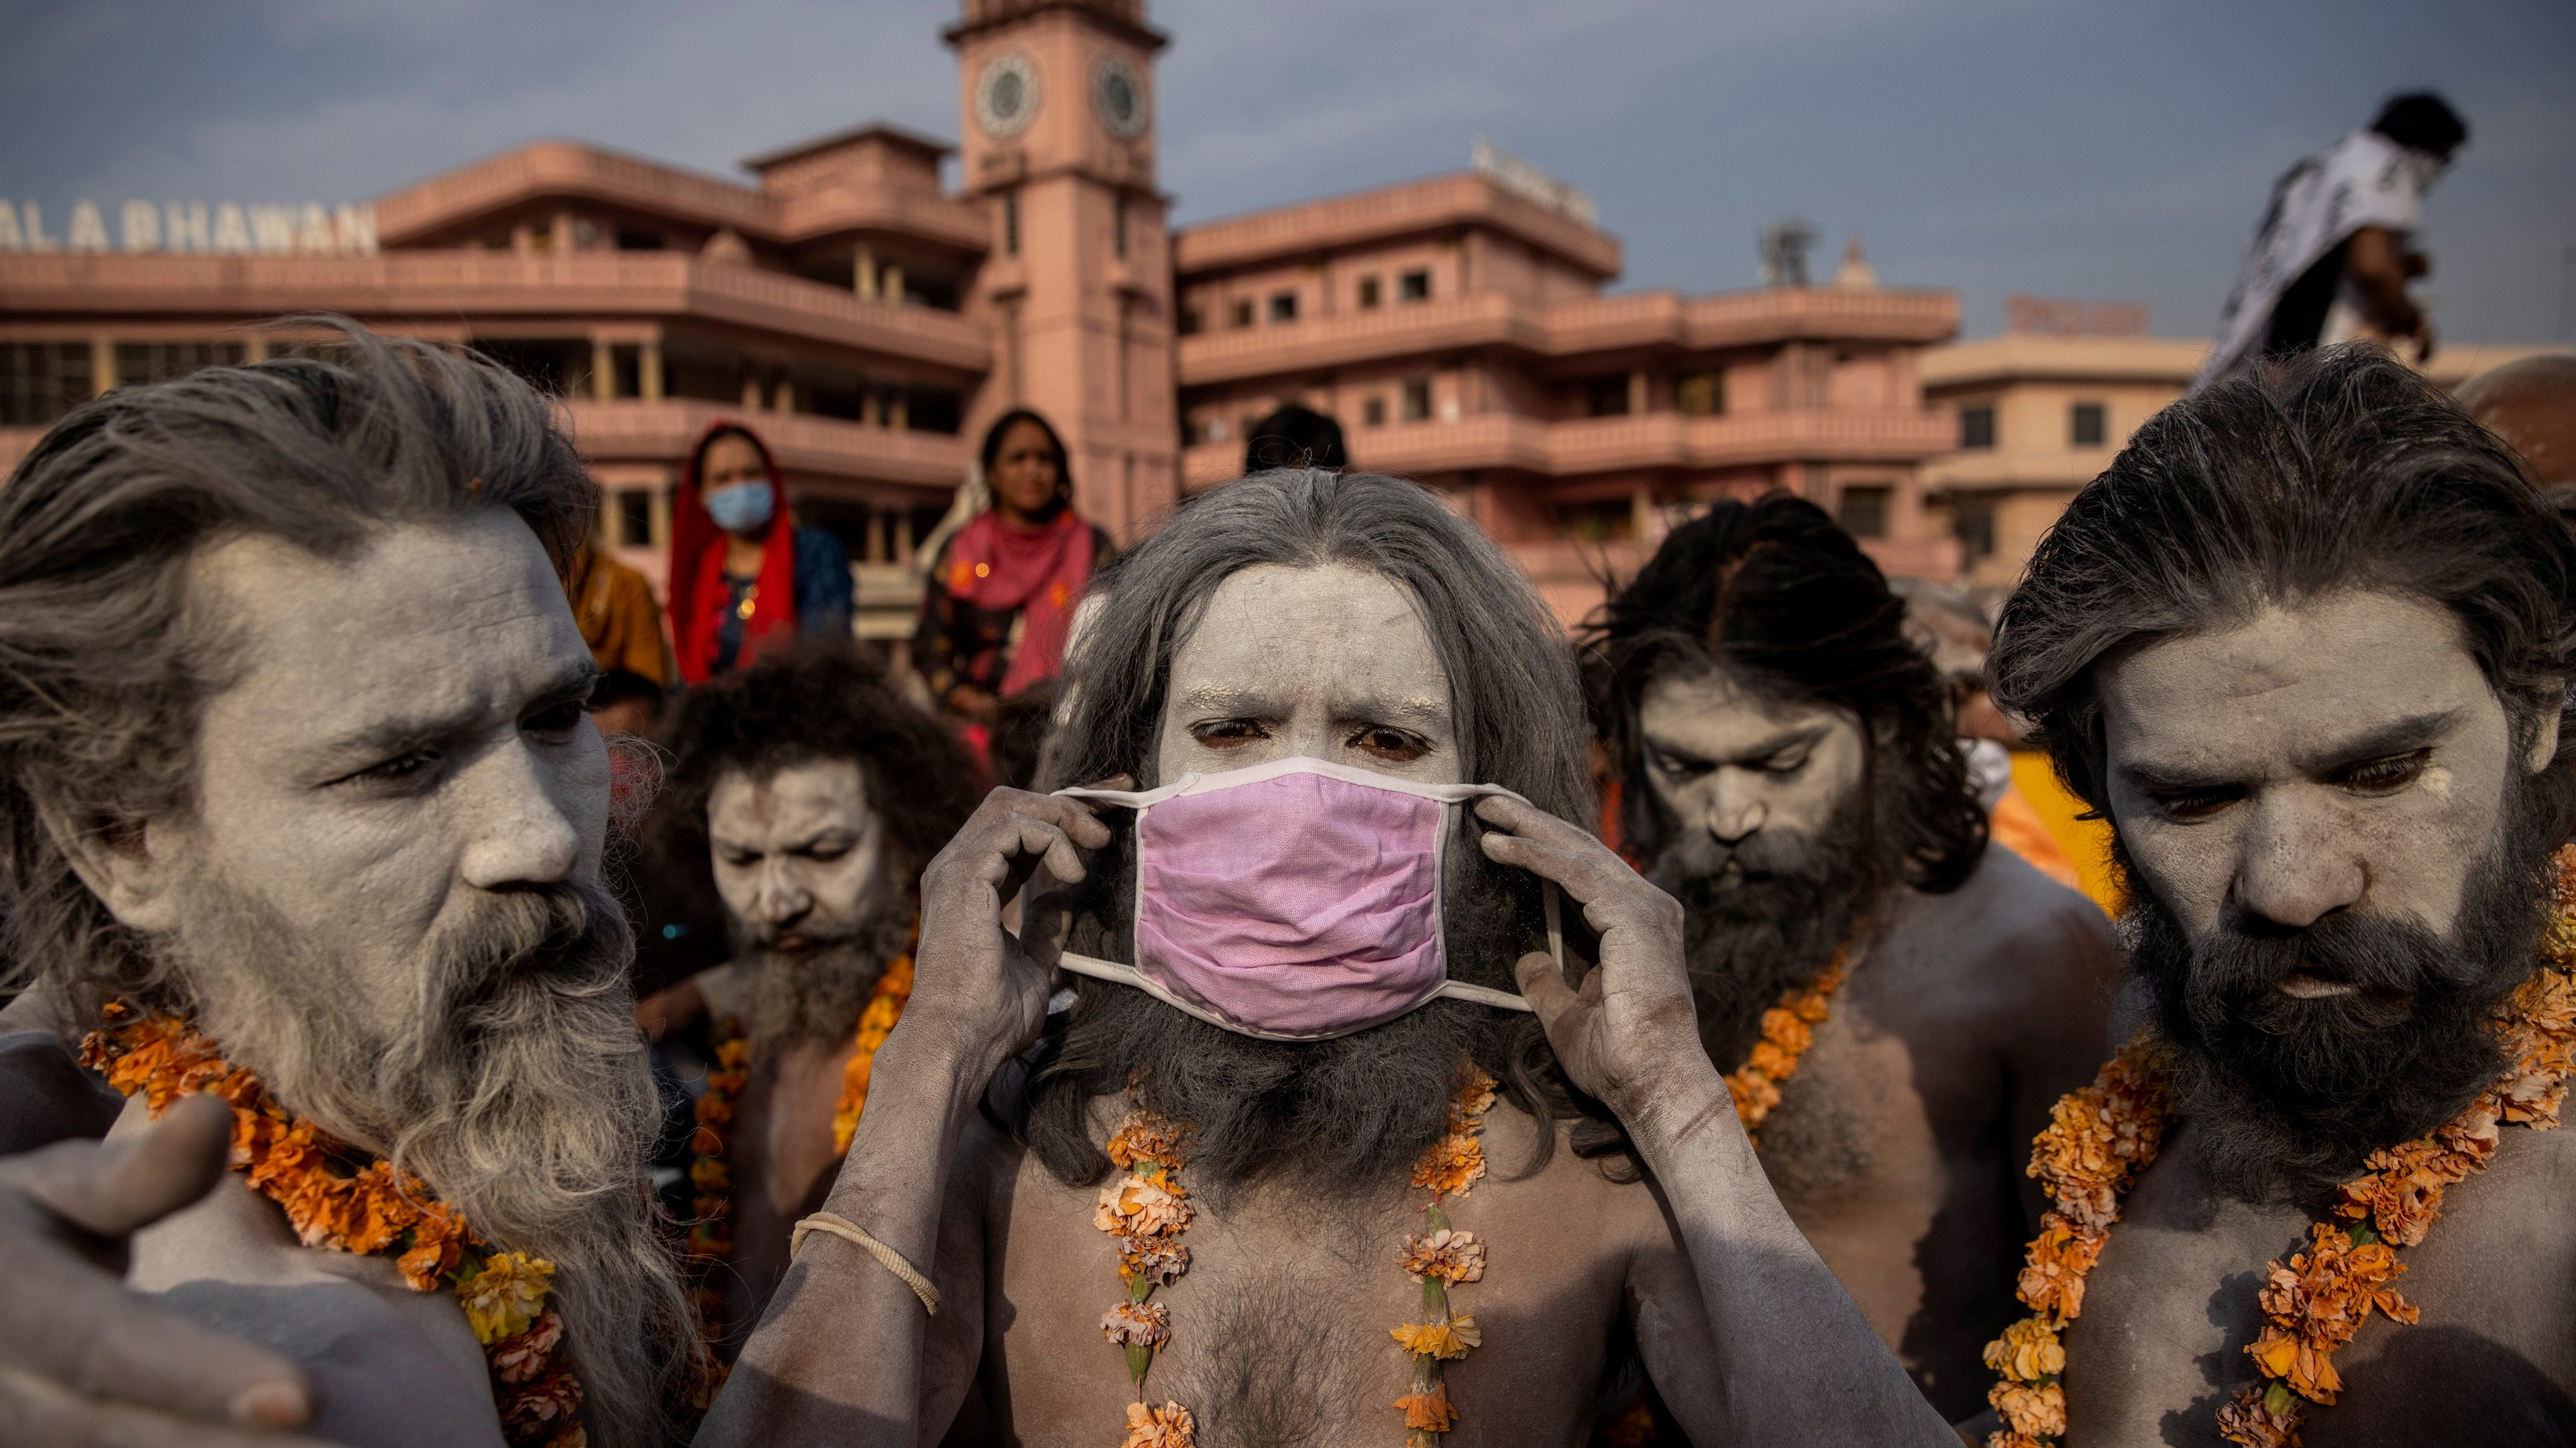 """A Naga Sadhu, or Hindu holy man wears a mask before the procession for taking a dip in the Ganges river during Shahi Snan at """"Kumbh Mela"""", or the Pitcher Festival, amidst the spread of the coronavirus disease (COVID-19), in Haridwar"""